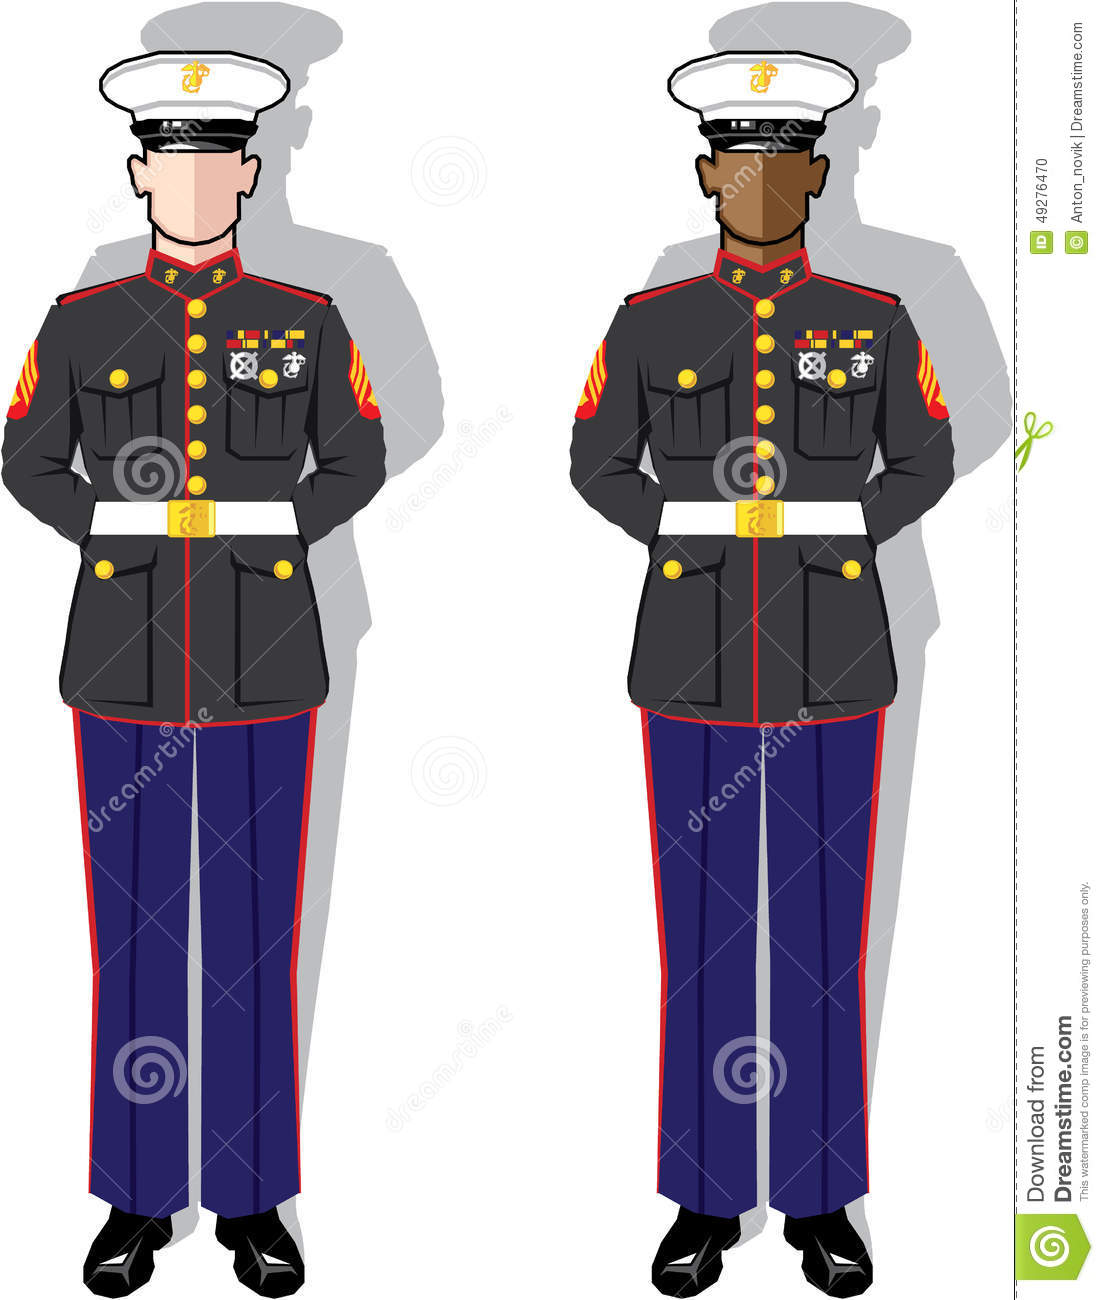 Marines Uniform Clipart.